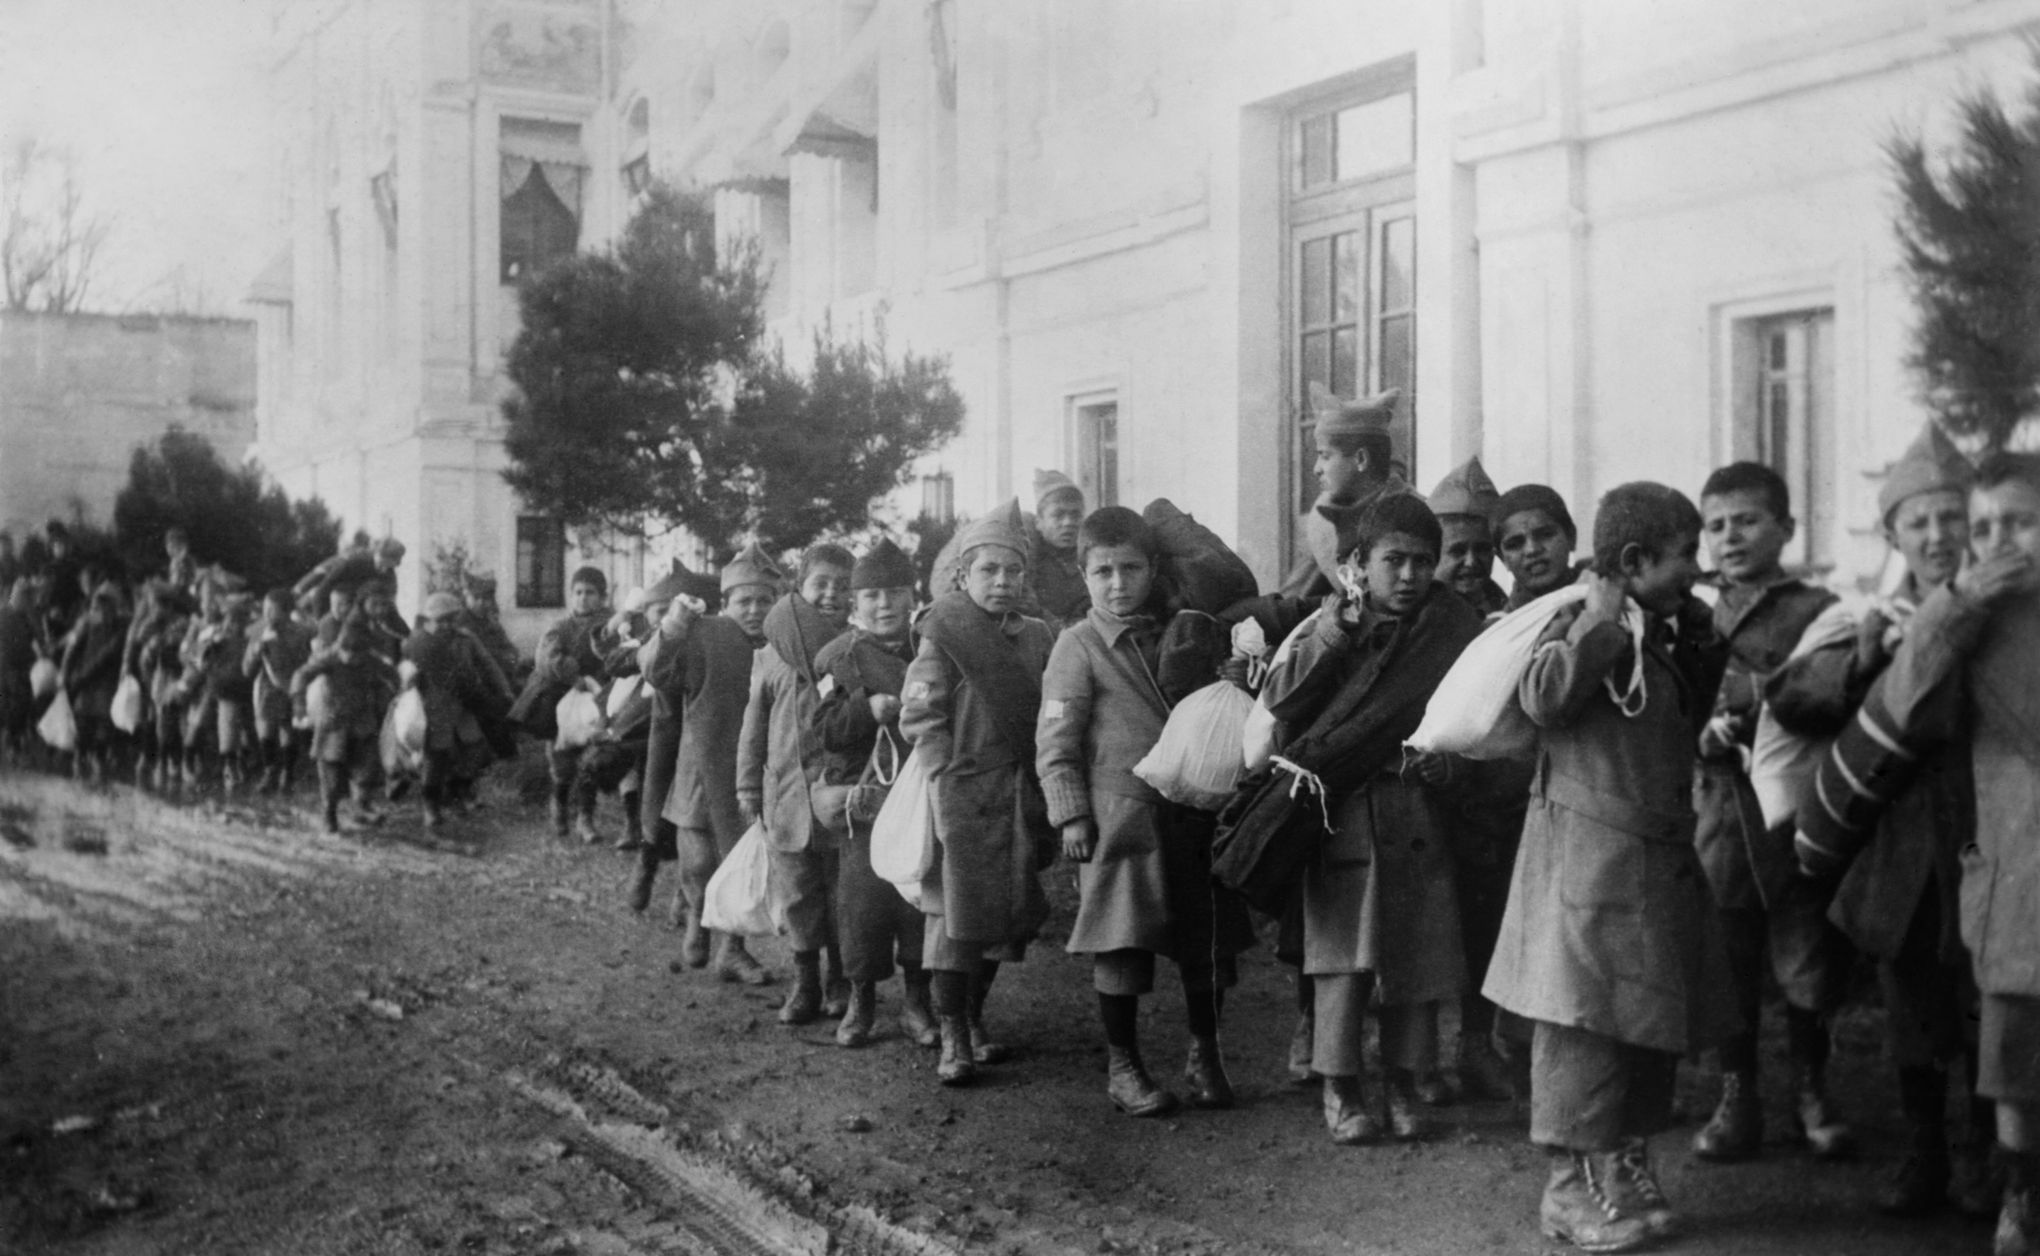 Evacuation de Turquie des orphelins armeniens rescapes du genocide, 1922 - – Armenian orphans (because of the genocide) evacuating from Turkey, 1922 (BSLOC_2013_5_27)